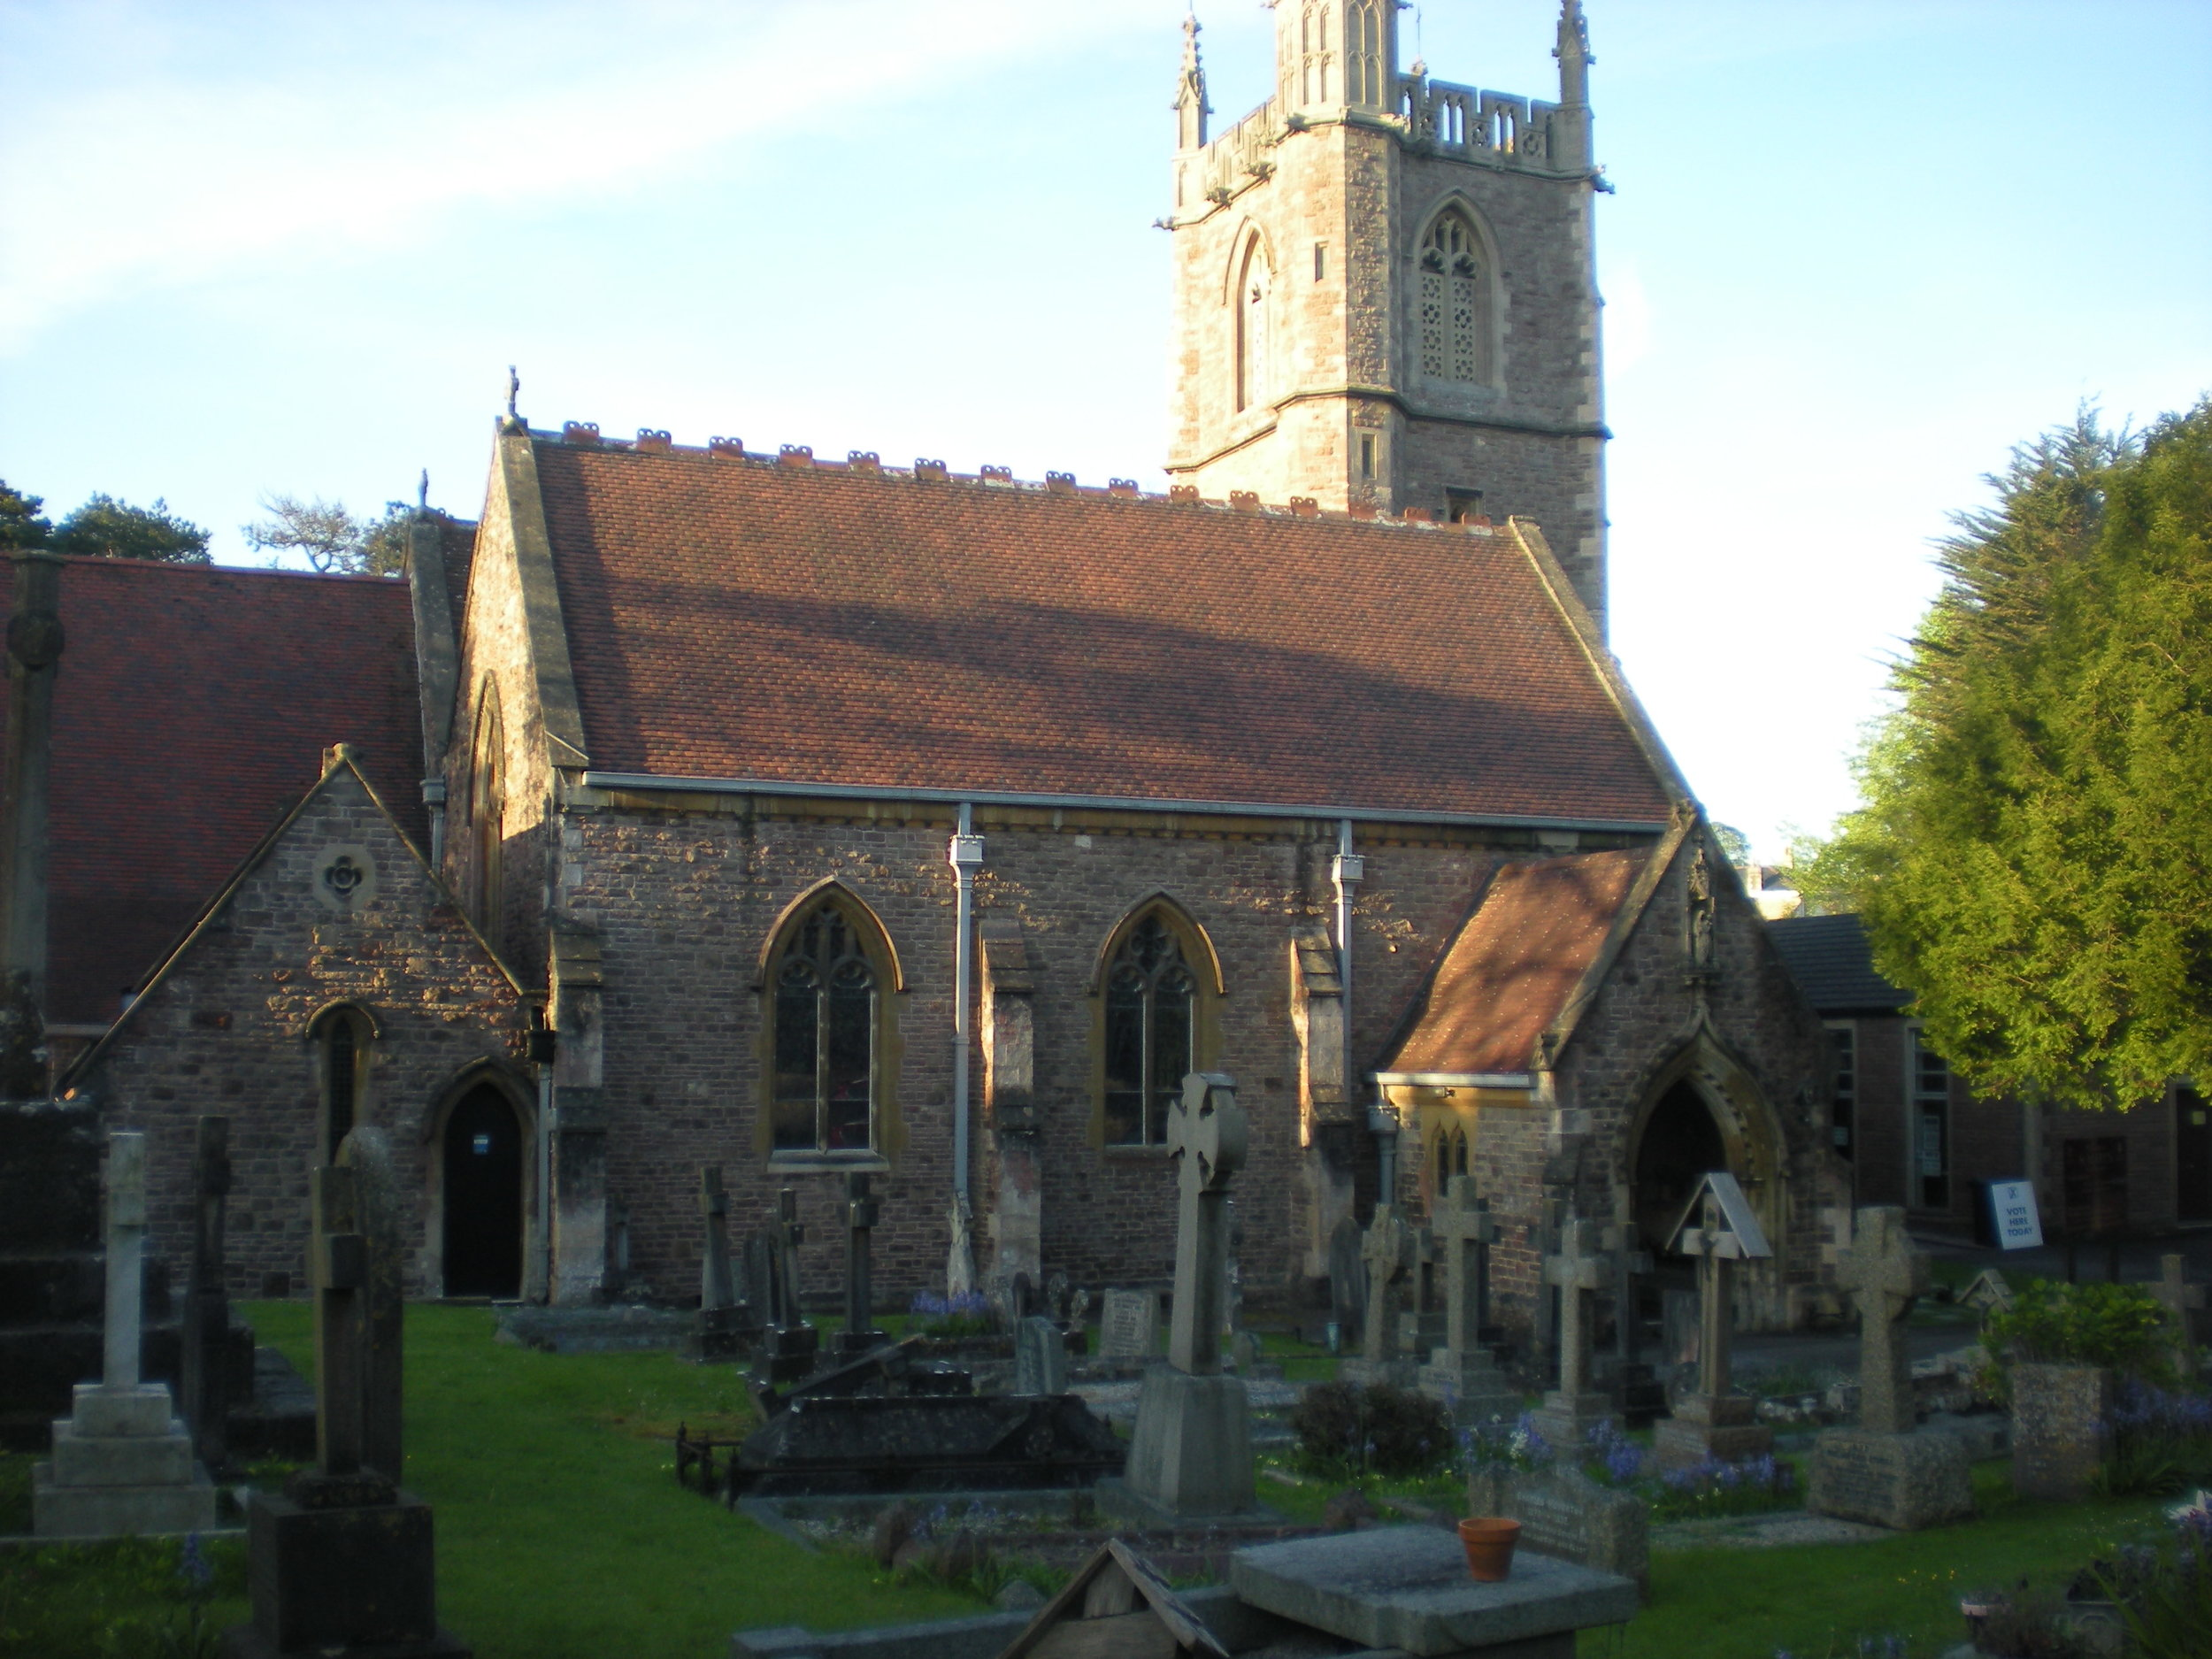 St Mary's (Clevedon)